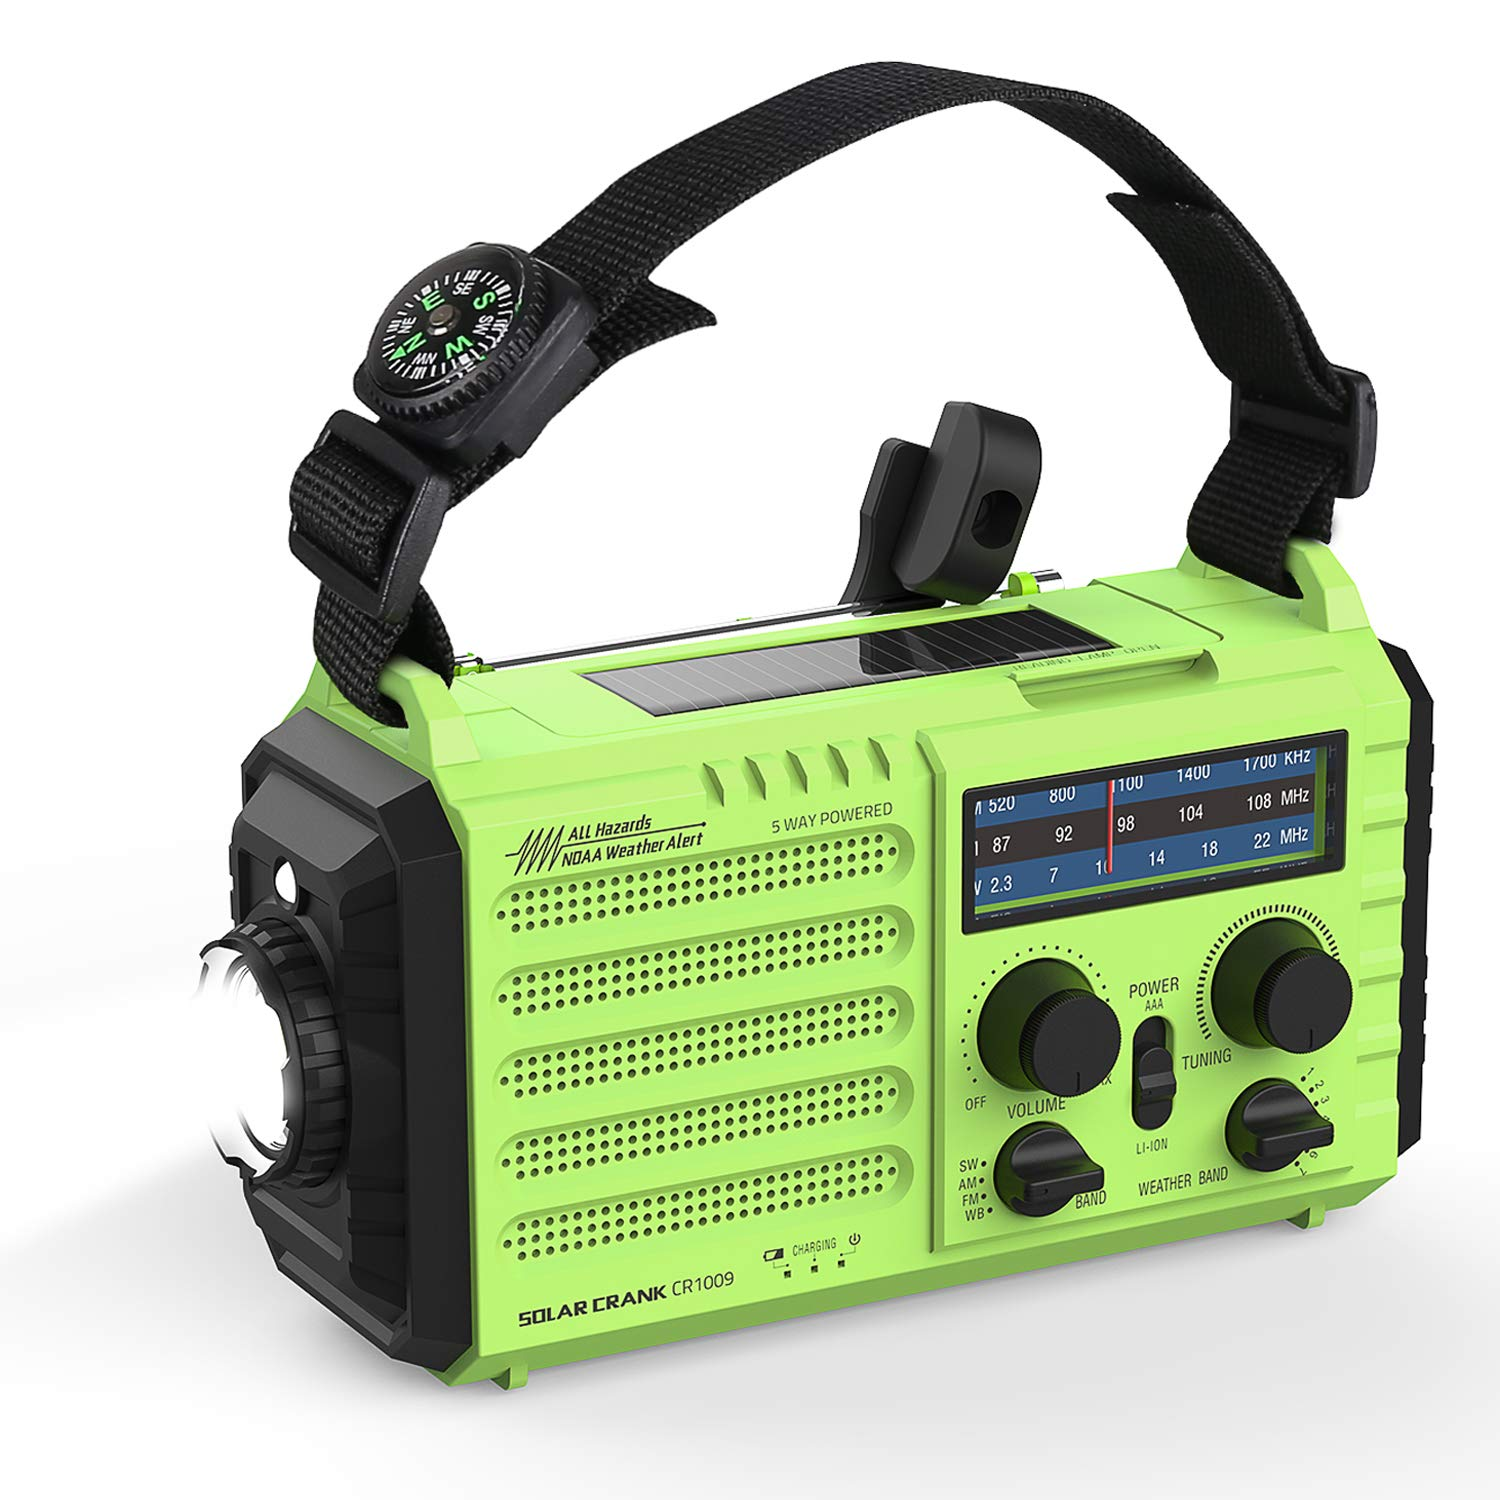 OnLyee Weather Radio, Emergency Solar Hand Crank Portable Radio 5-Way Power Sources AM/FM/SW/NOAA Weather Radio with LED Flashlight, Reading Lamp, 2000mAh Power Bank USB Charger and SOS Alarm by OnLyee